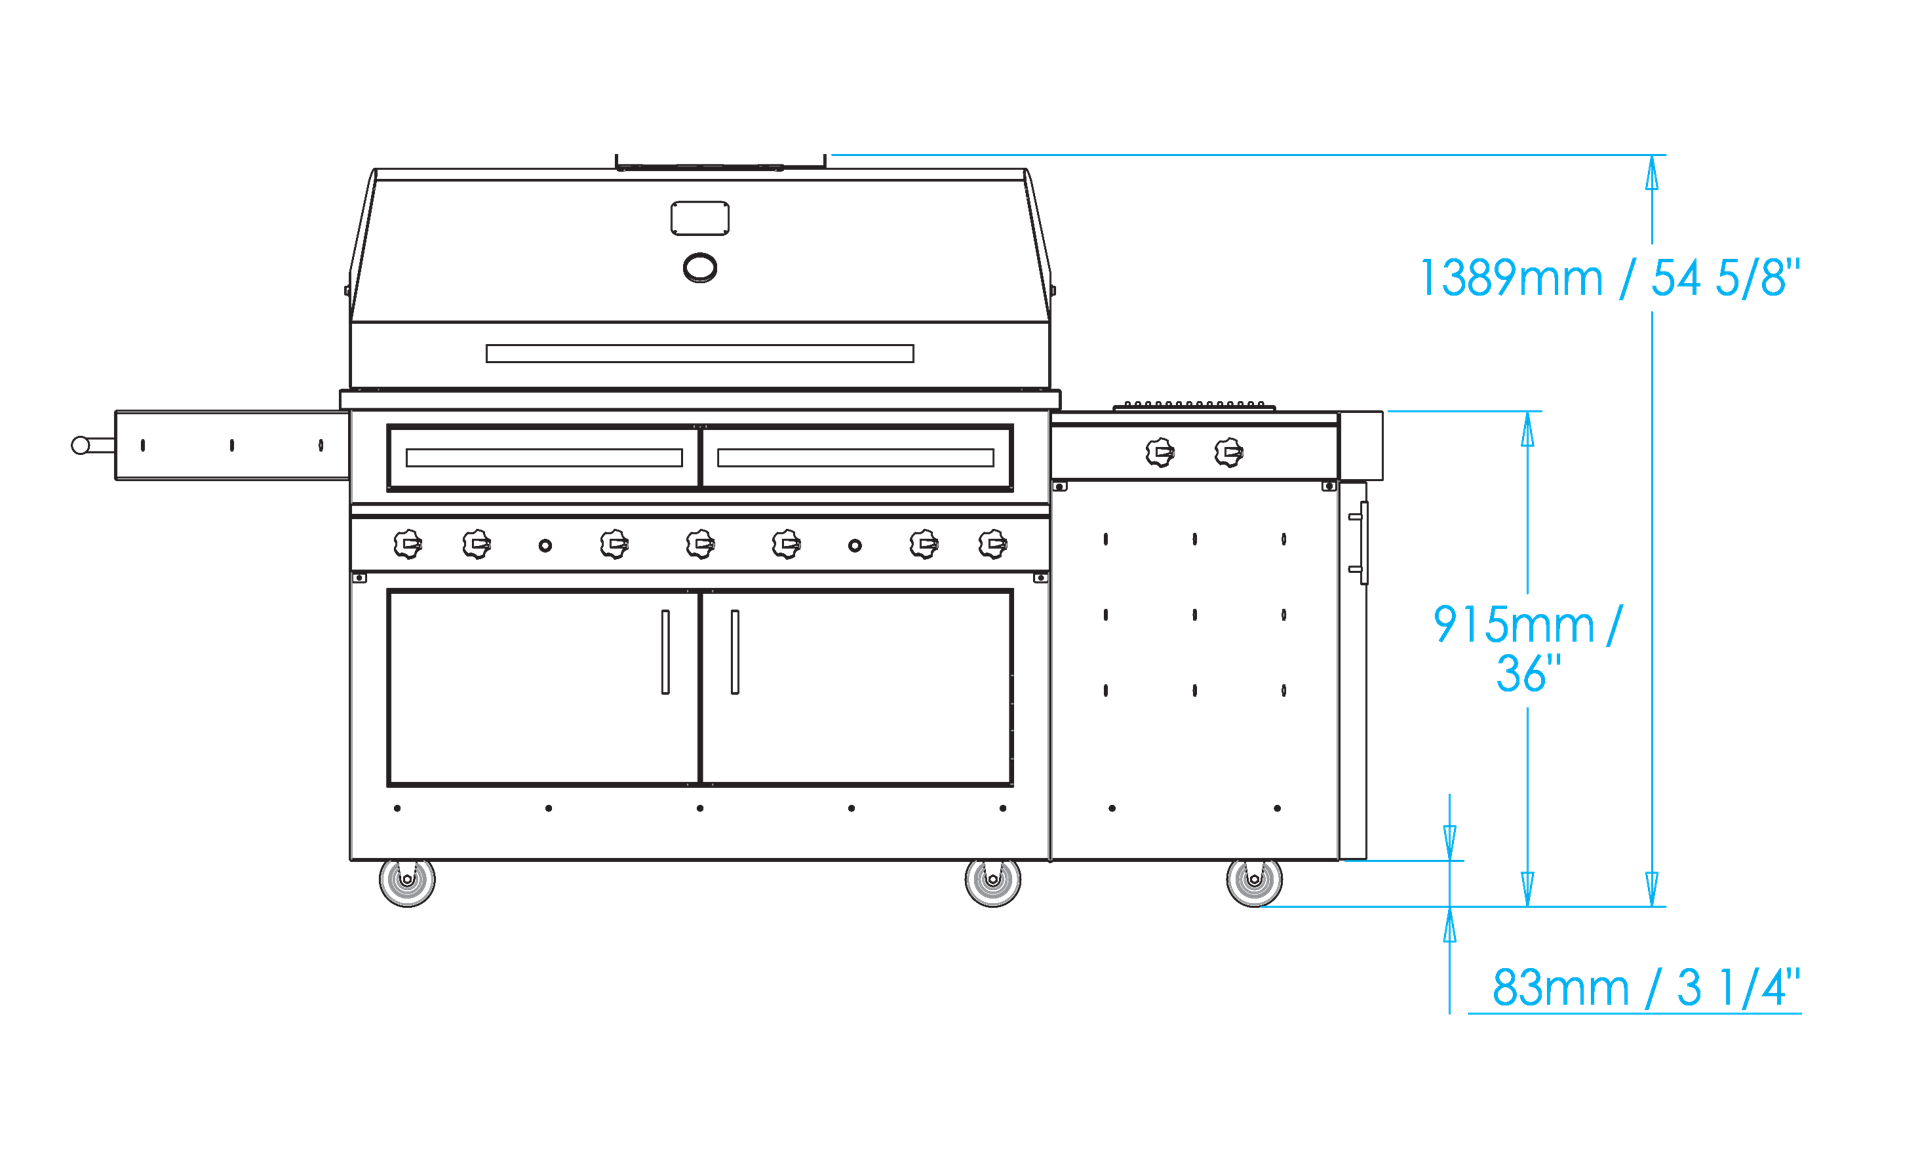 K1000 Freestanding Hybrid Fire Grill with Side Burner Dimensions Image